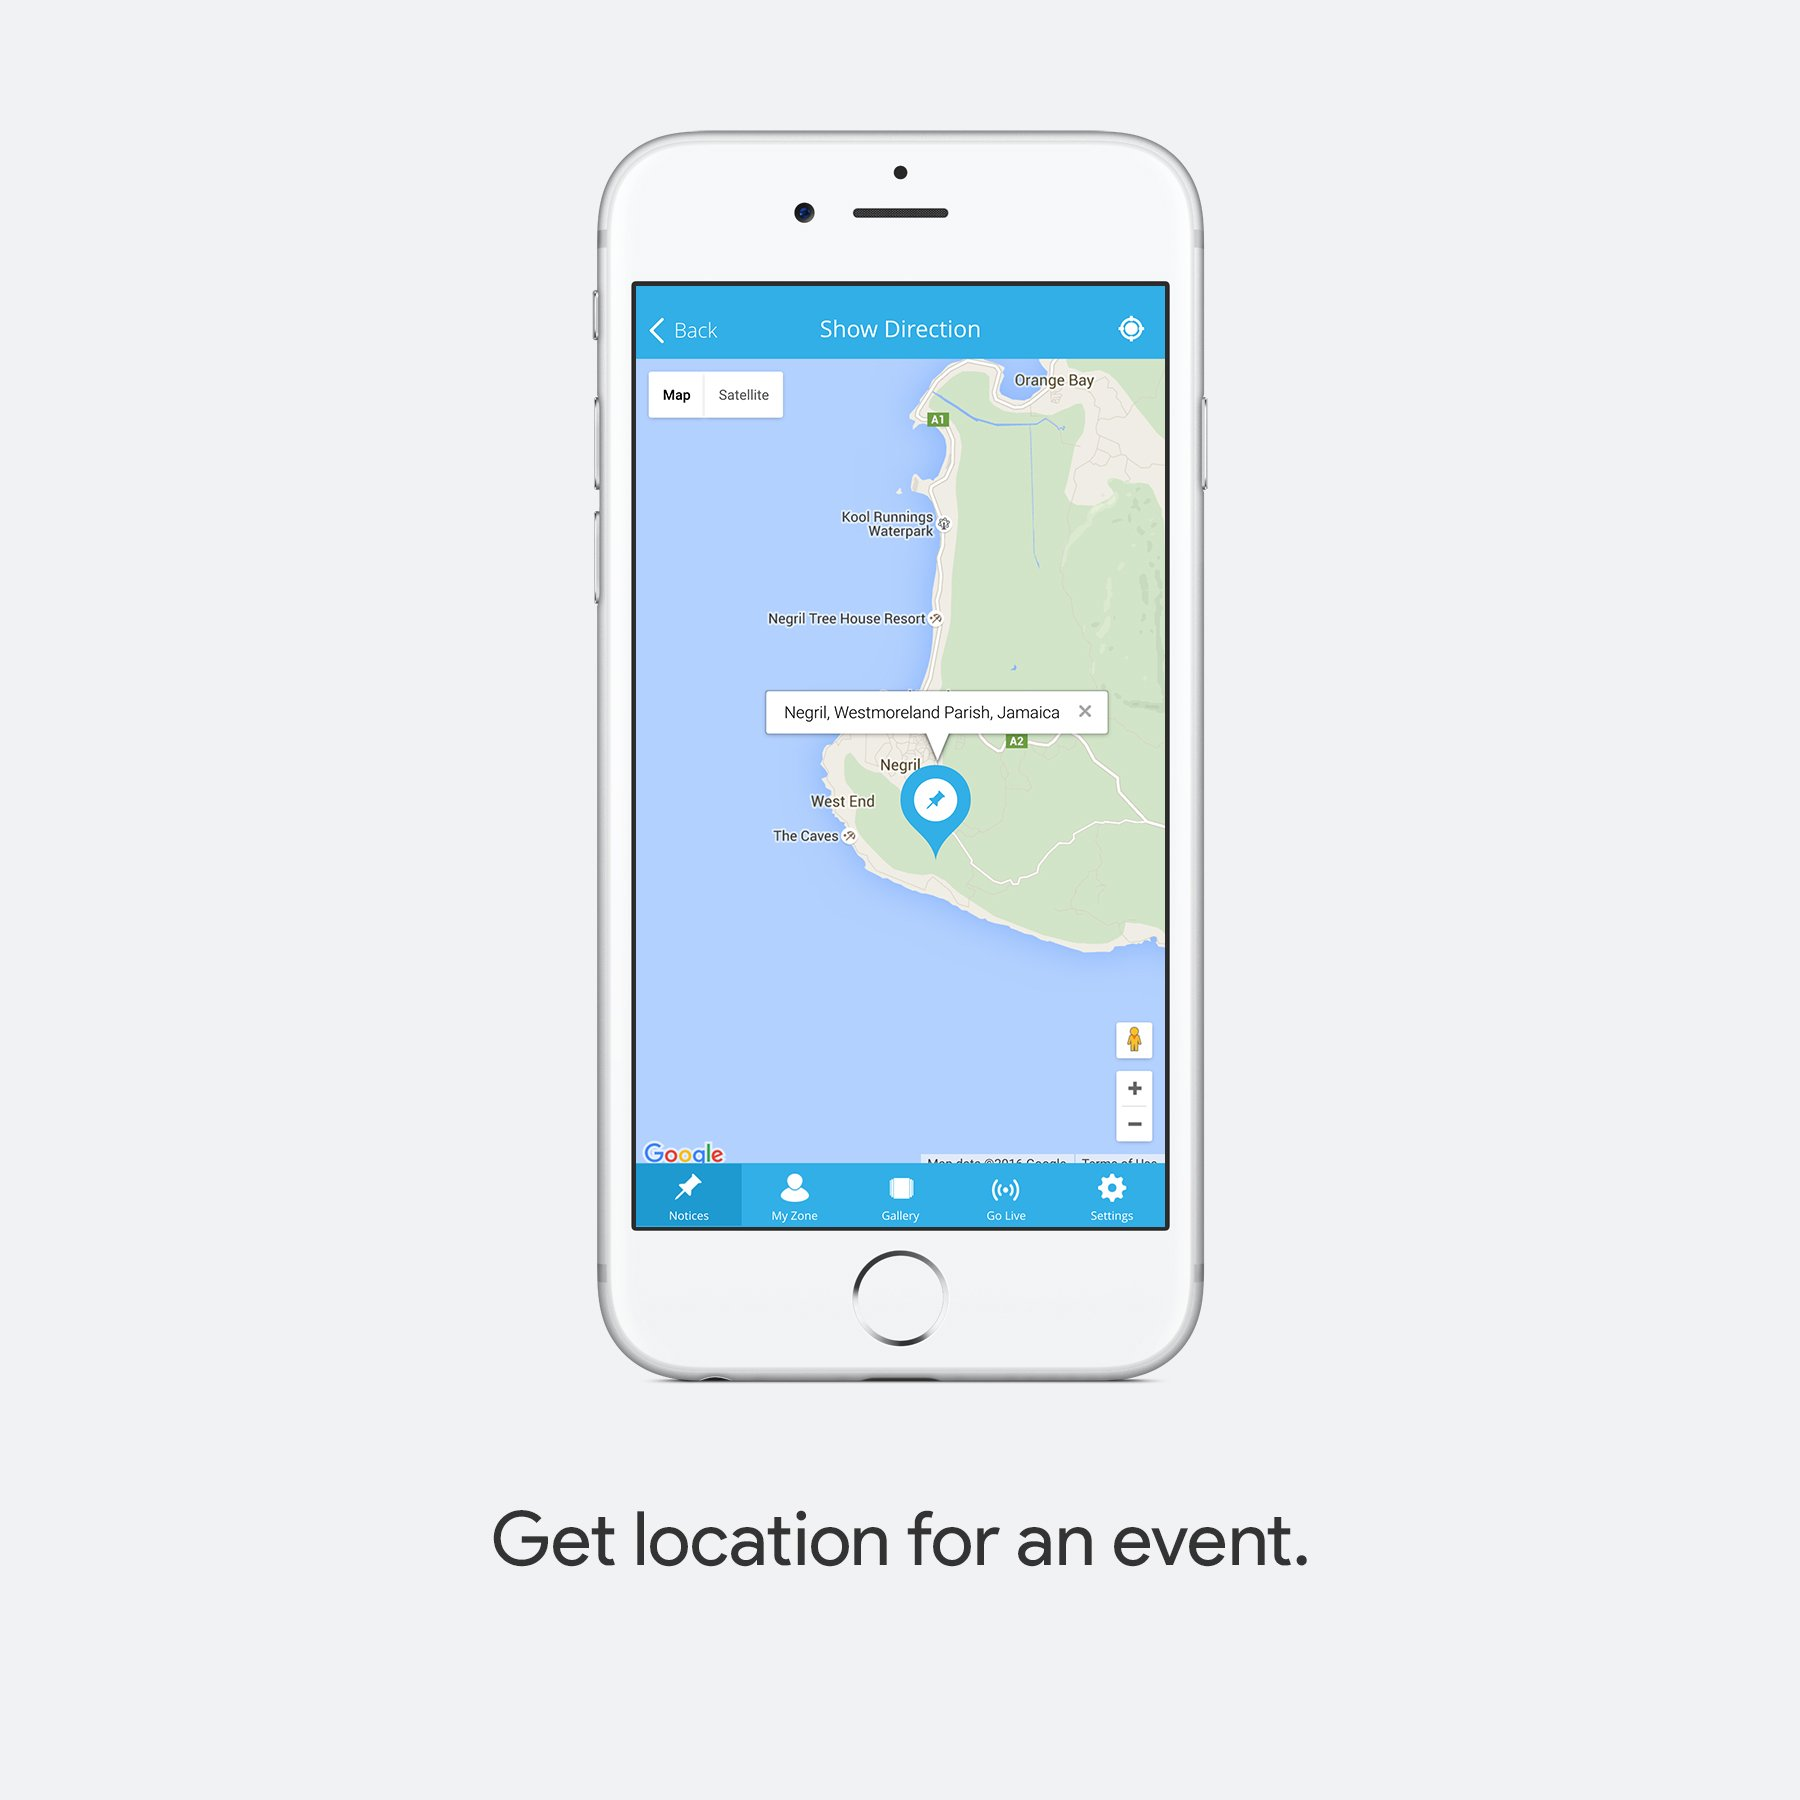 Get location for an event.